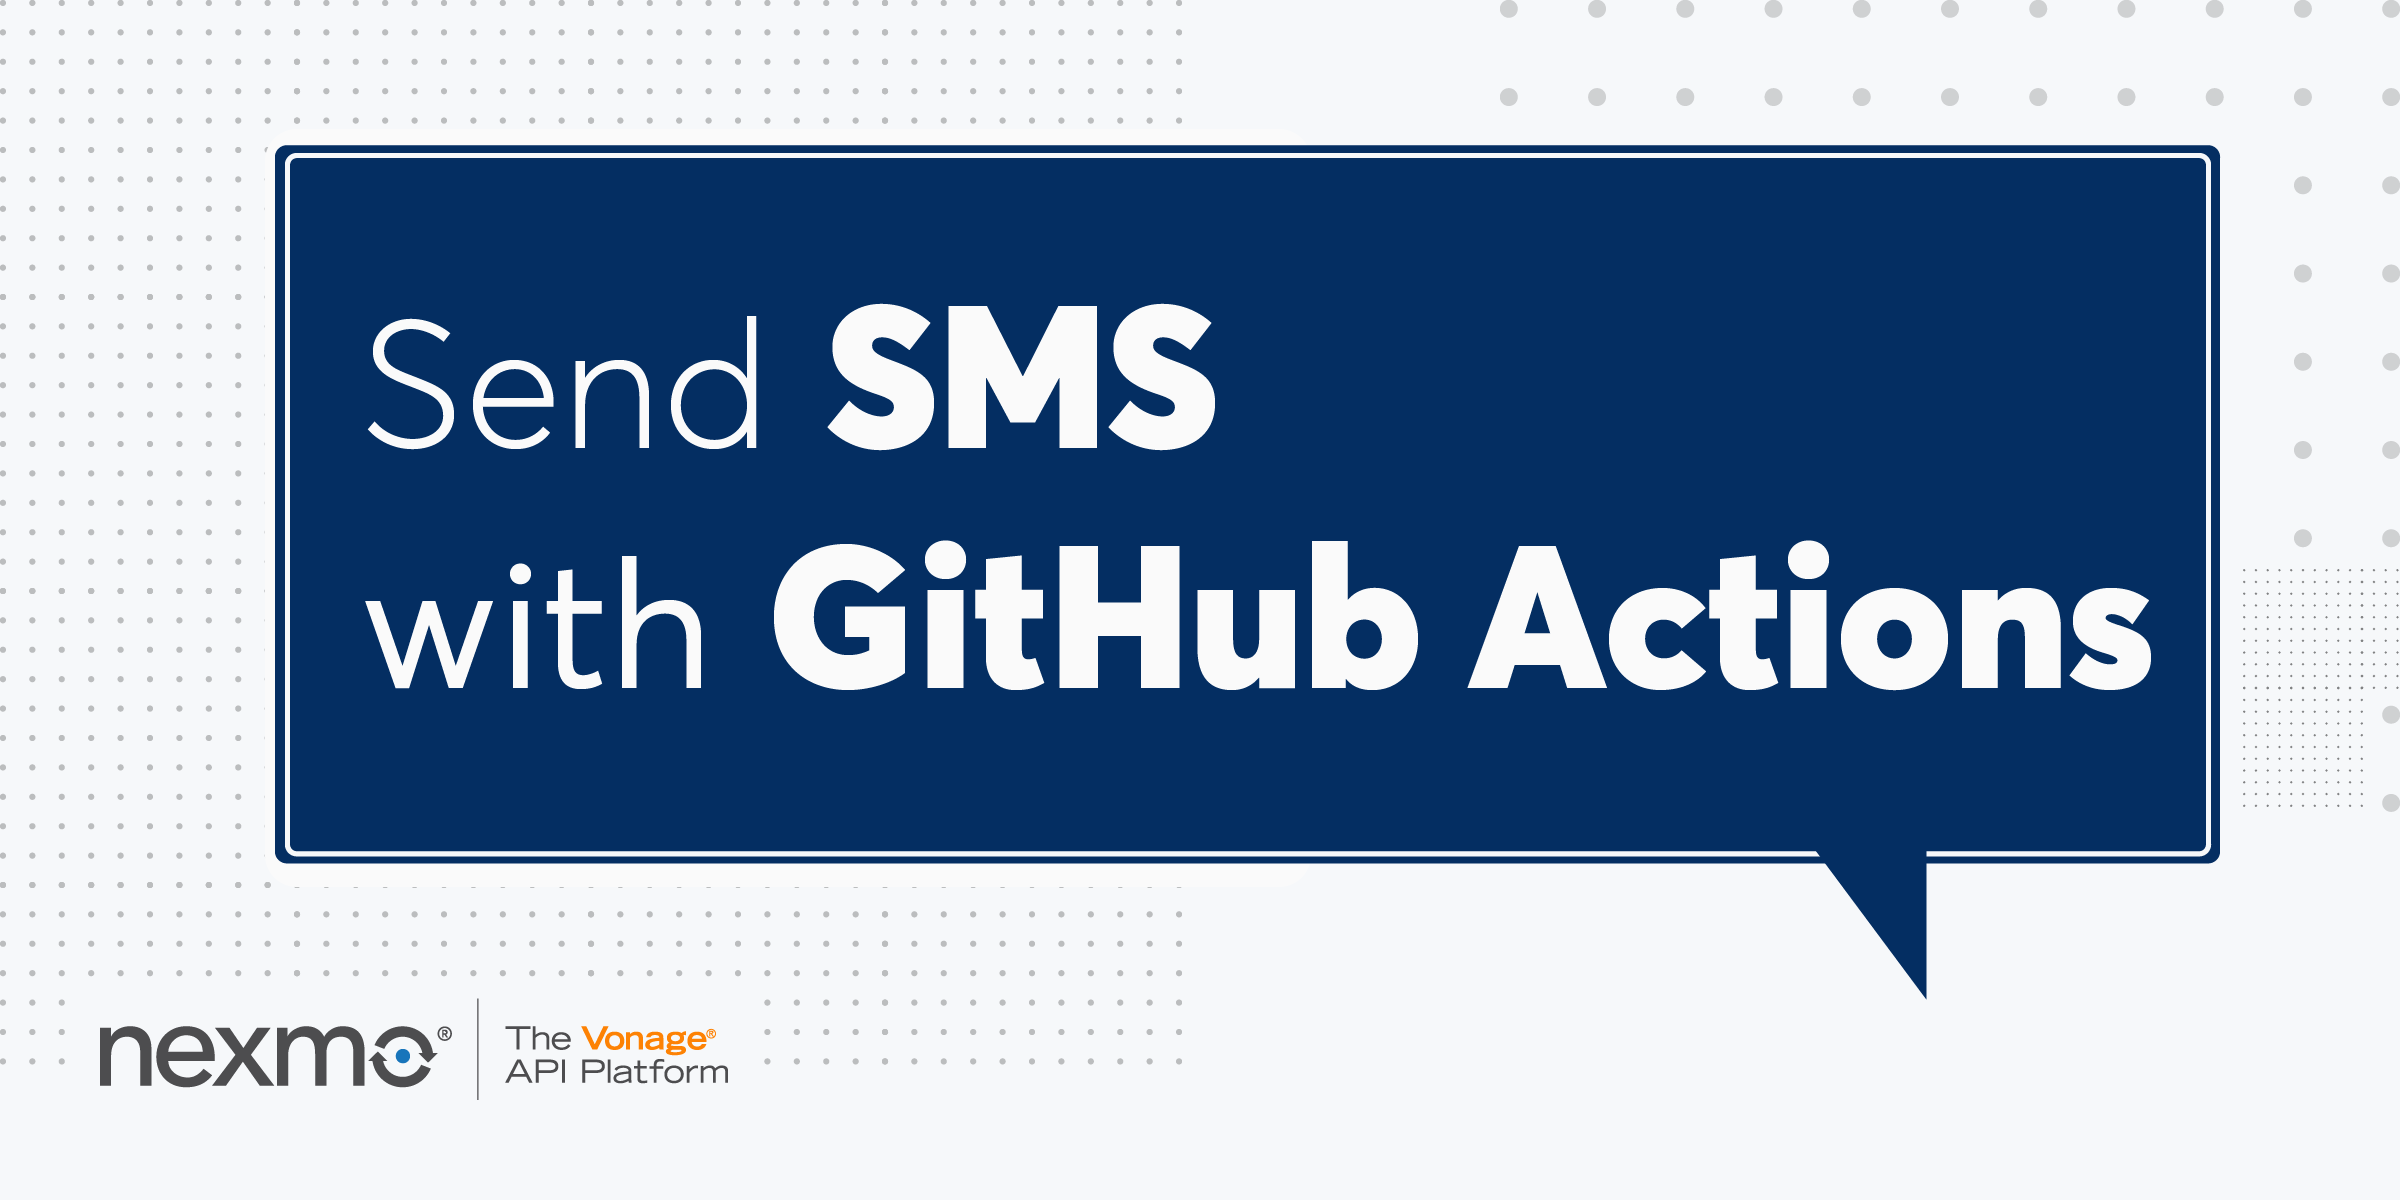 Send SMS with GitHub Actions